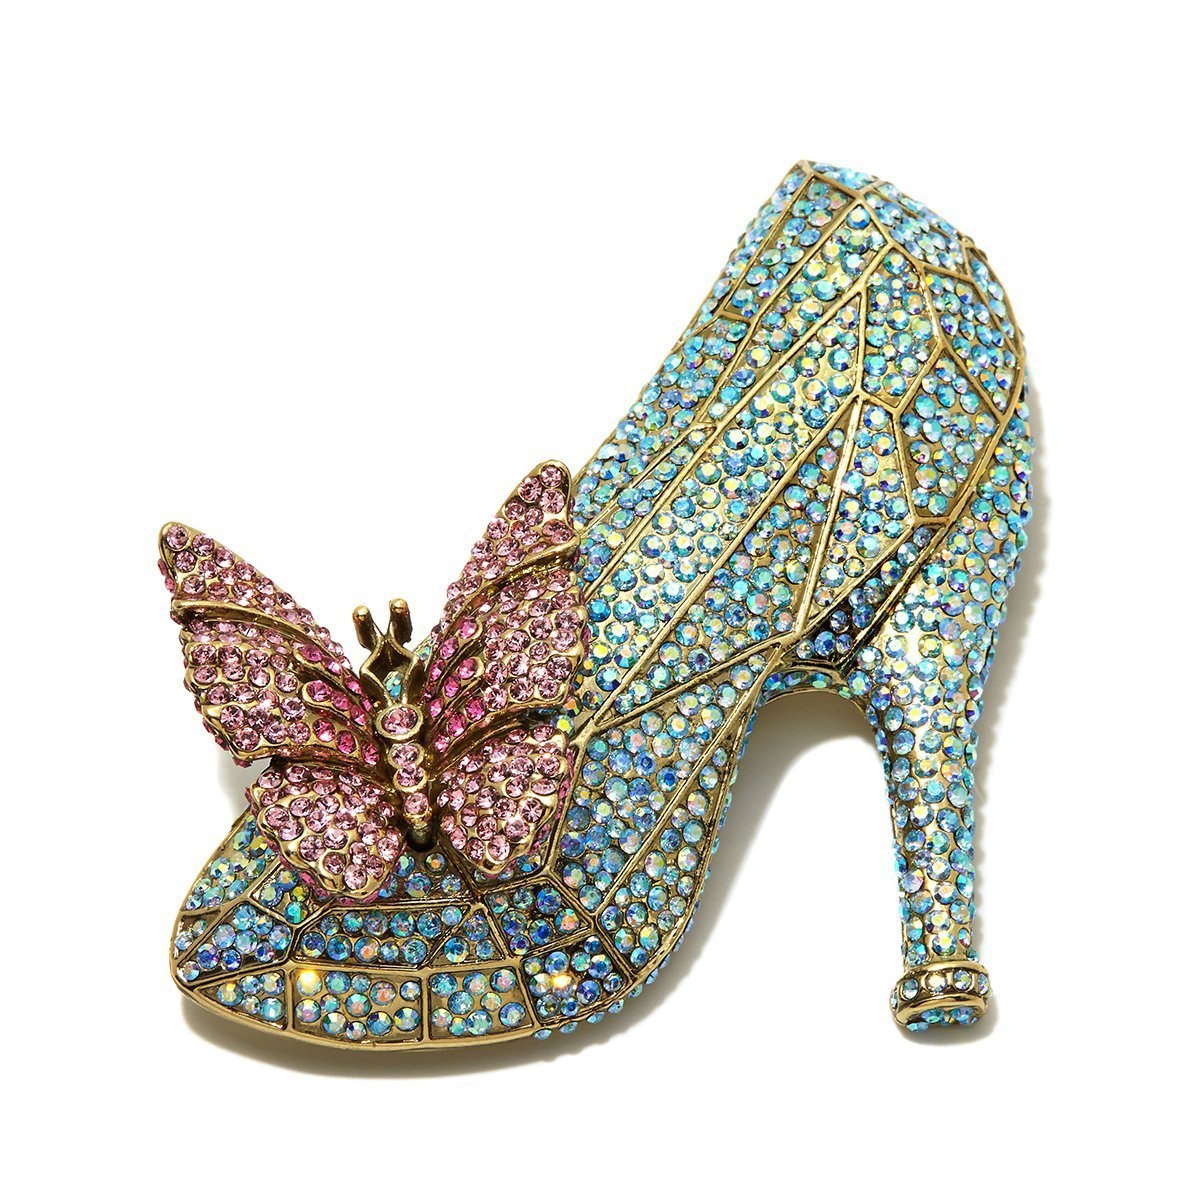 Heidi Daus If The Shoe Fits Glass Slipper Pin SWAROVSKI FROM THE CINDERELLA COLLECTION!!!